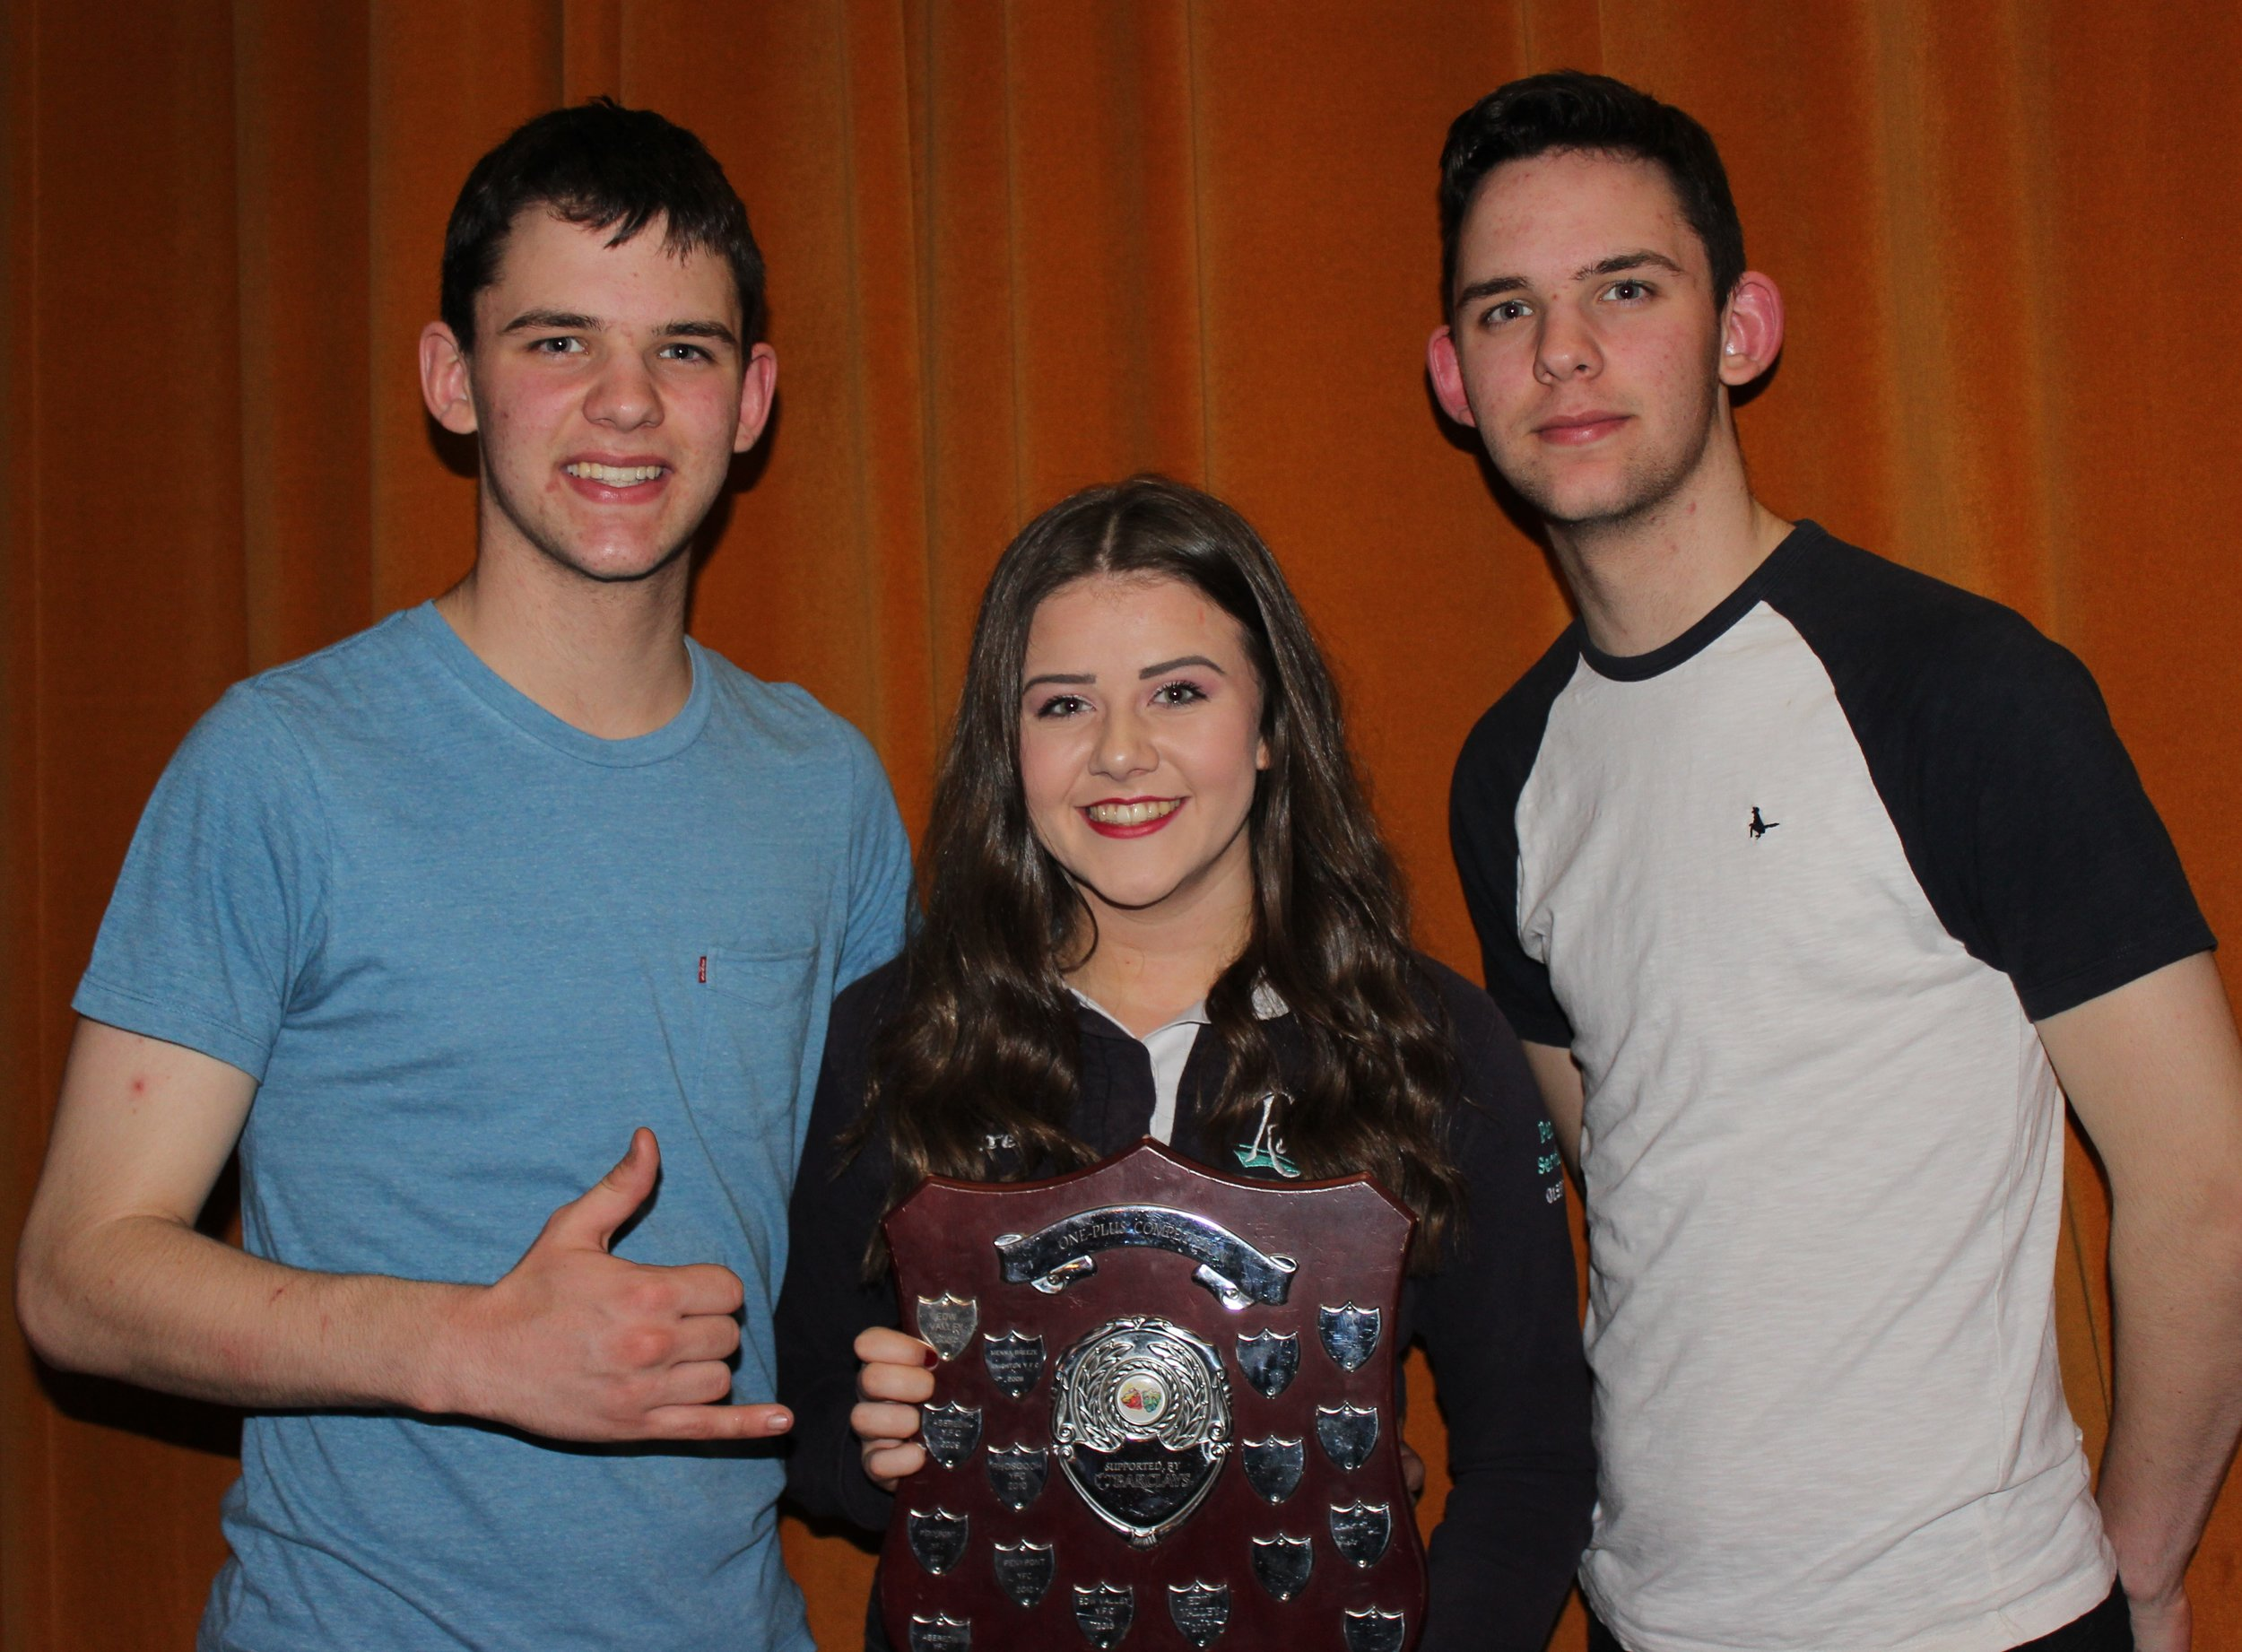 James Powell, Lauren Bradford & James Powell, Penybont YFC with the Barclays Bank Shield for the One Plus Competition.